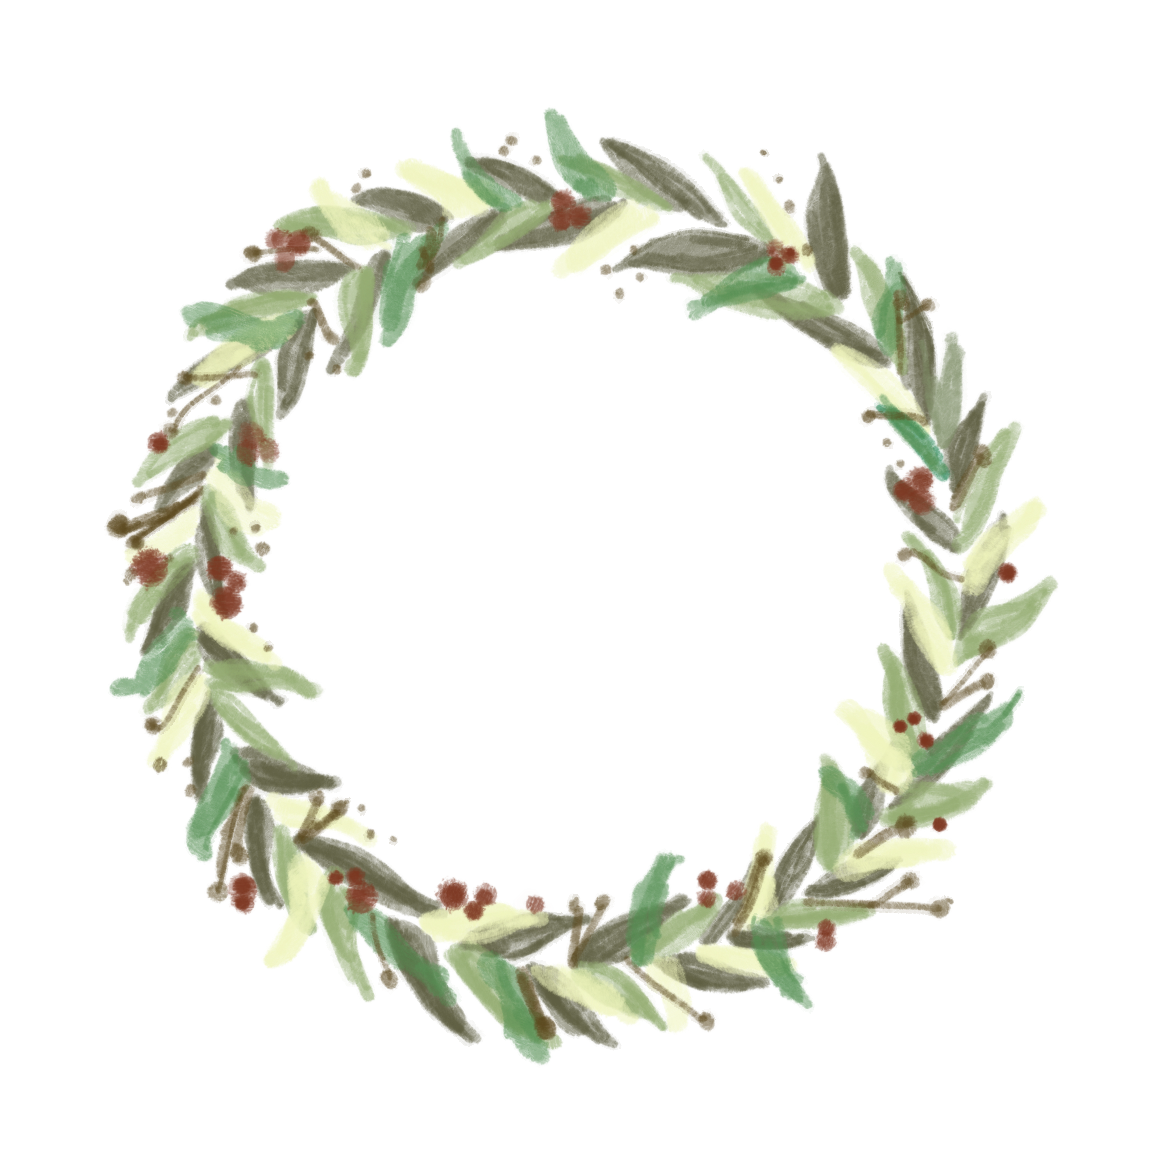 Paint save transparent png. Painted wreath graphic free